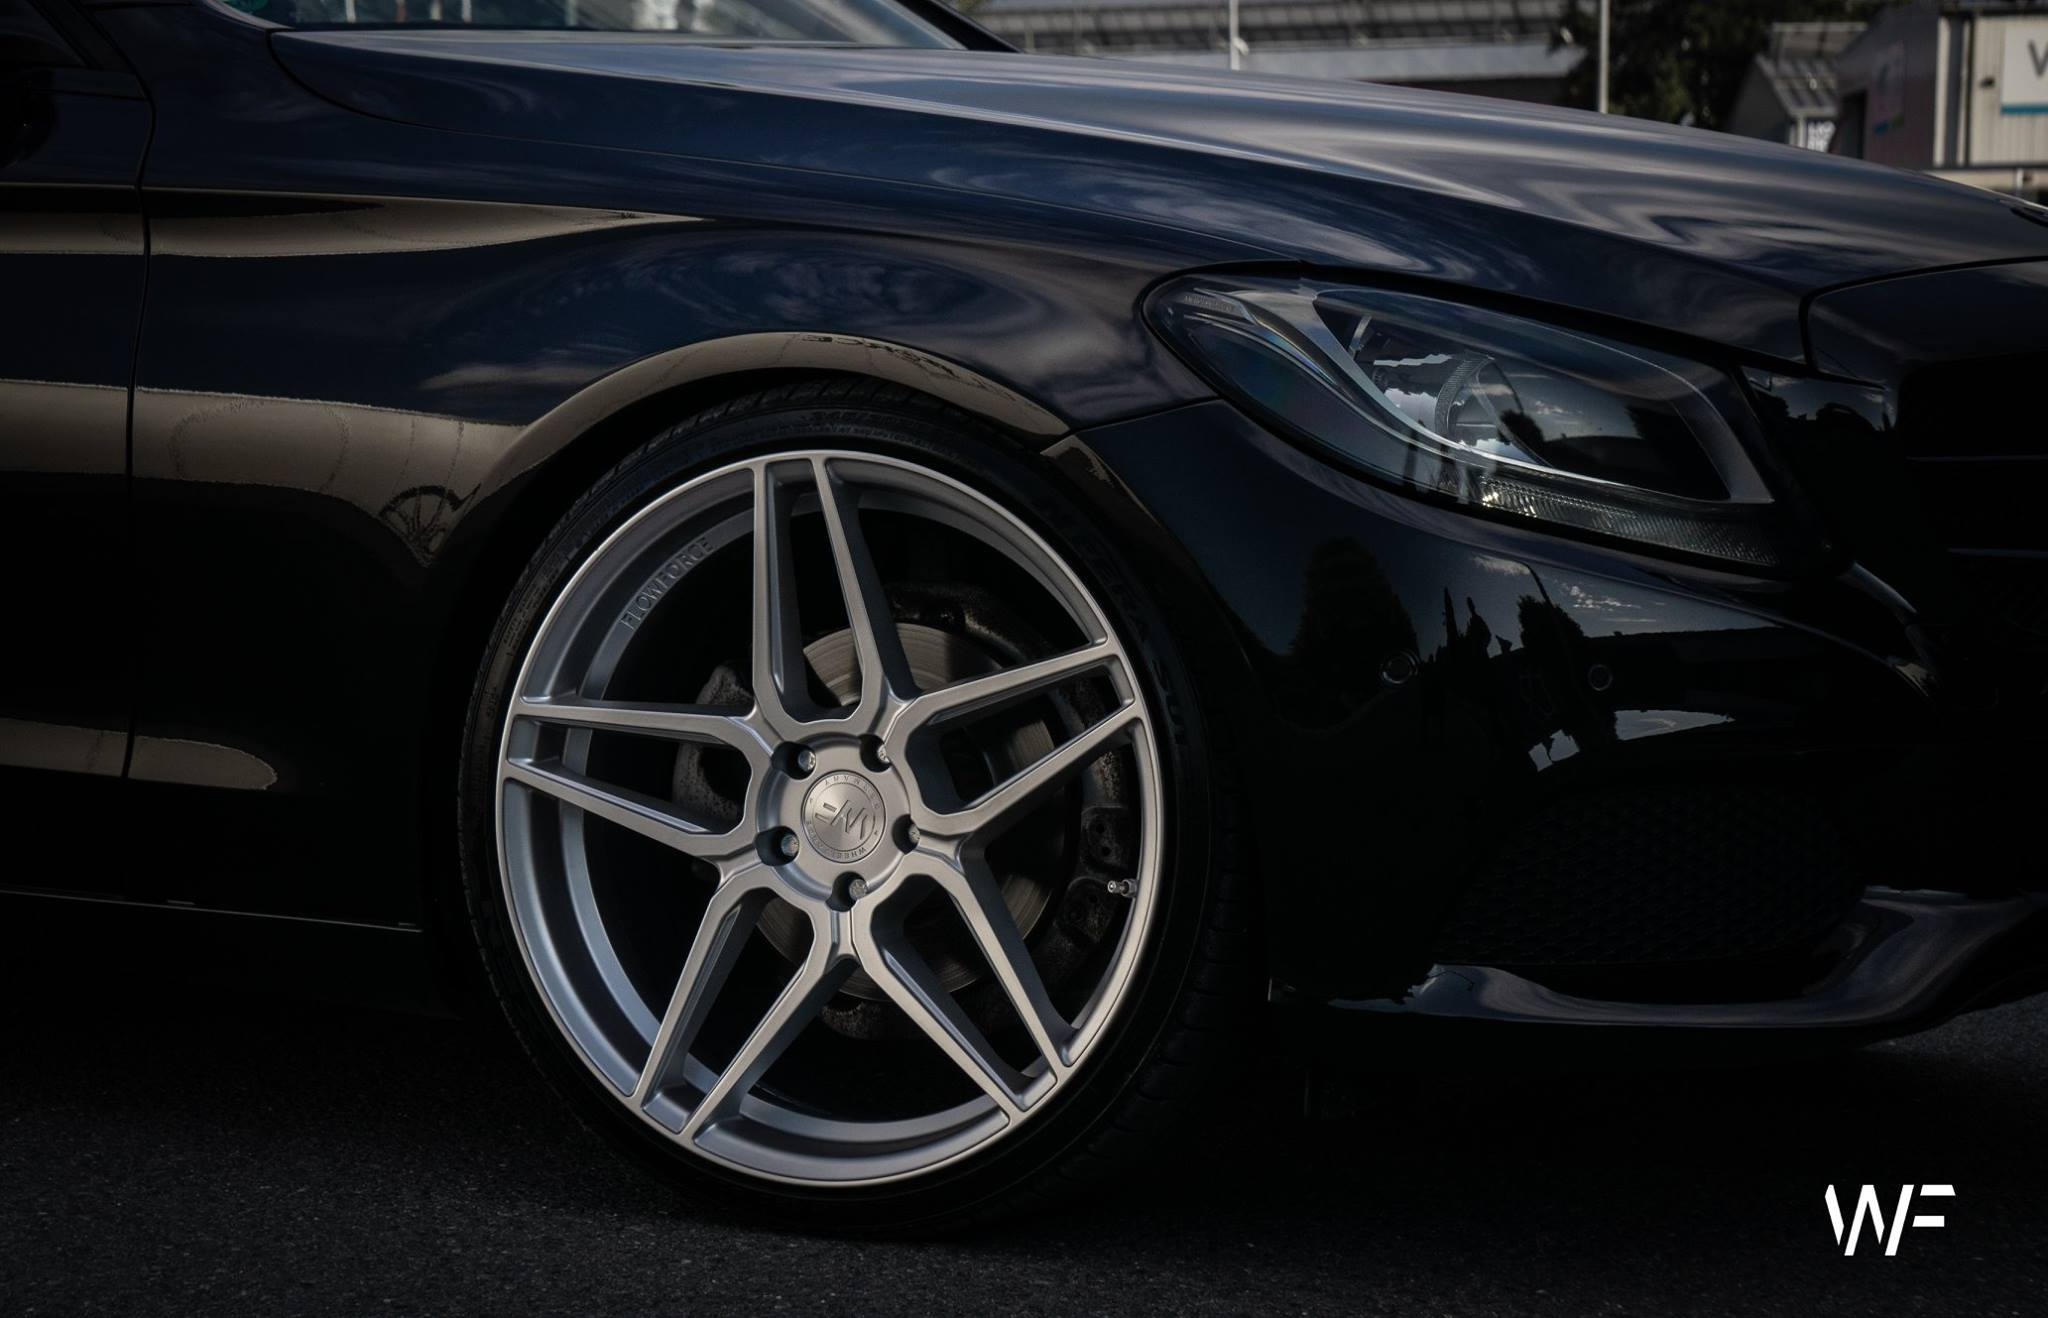 "Wheelforce CF.1-FF 20"" Felgensatz für Mercedes C Klasse in Frozen Silver"